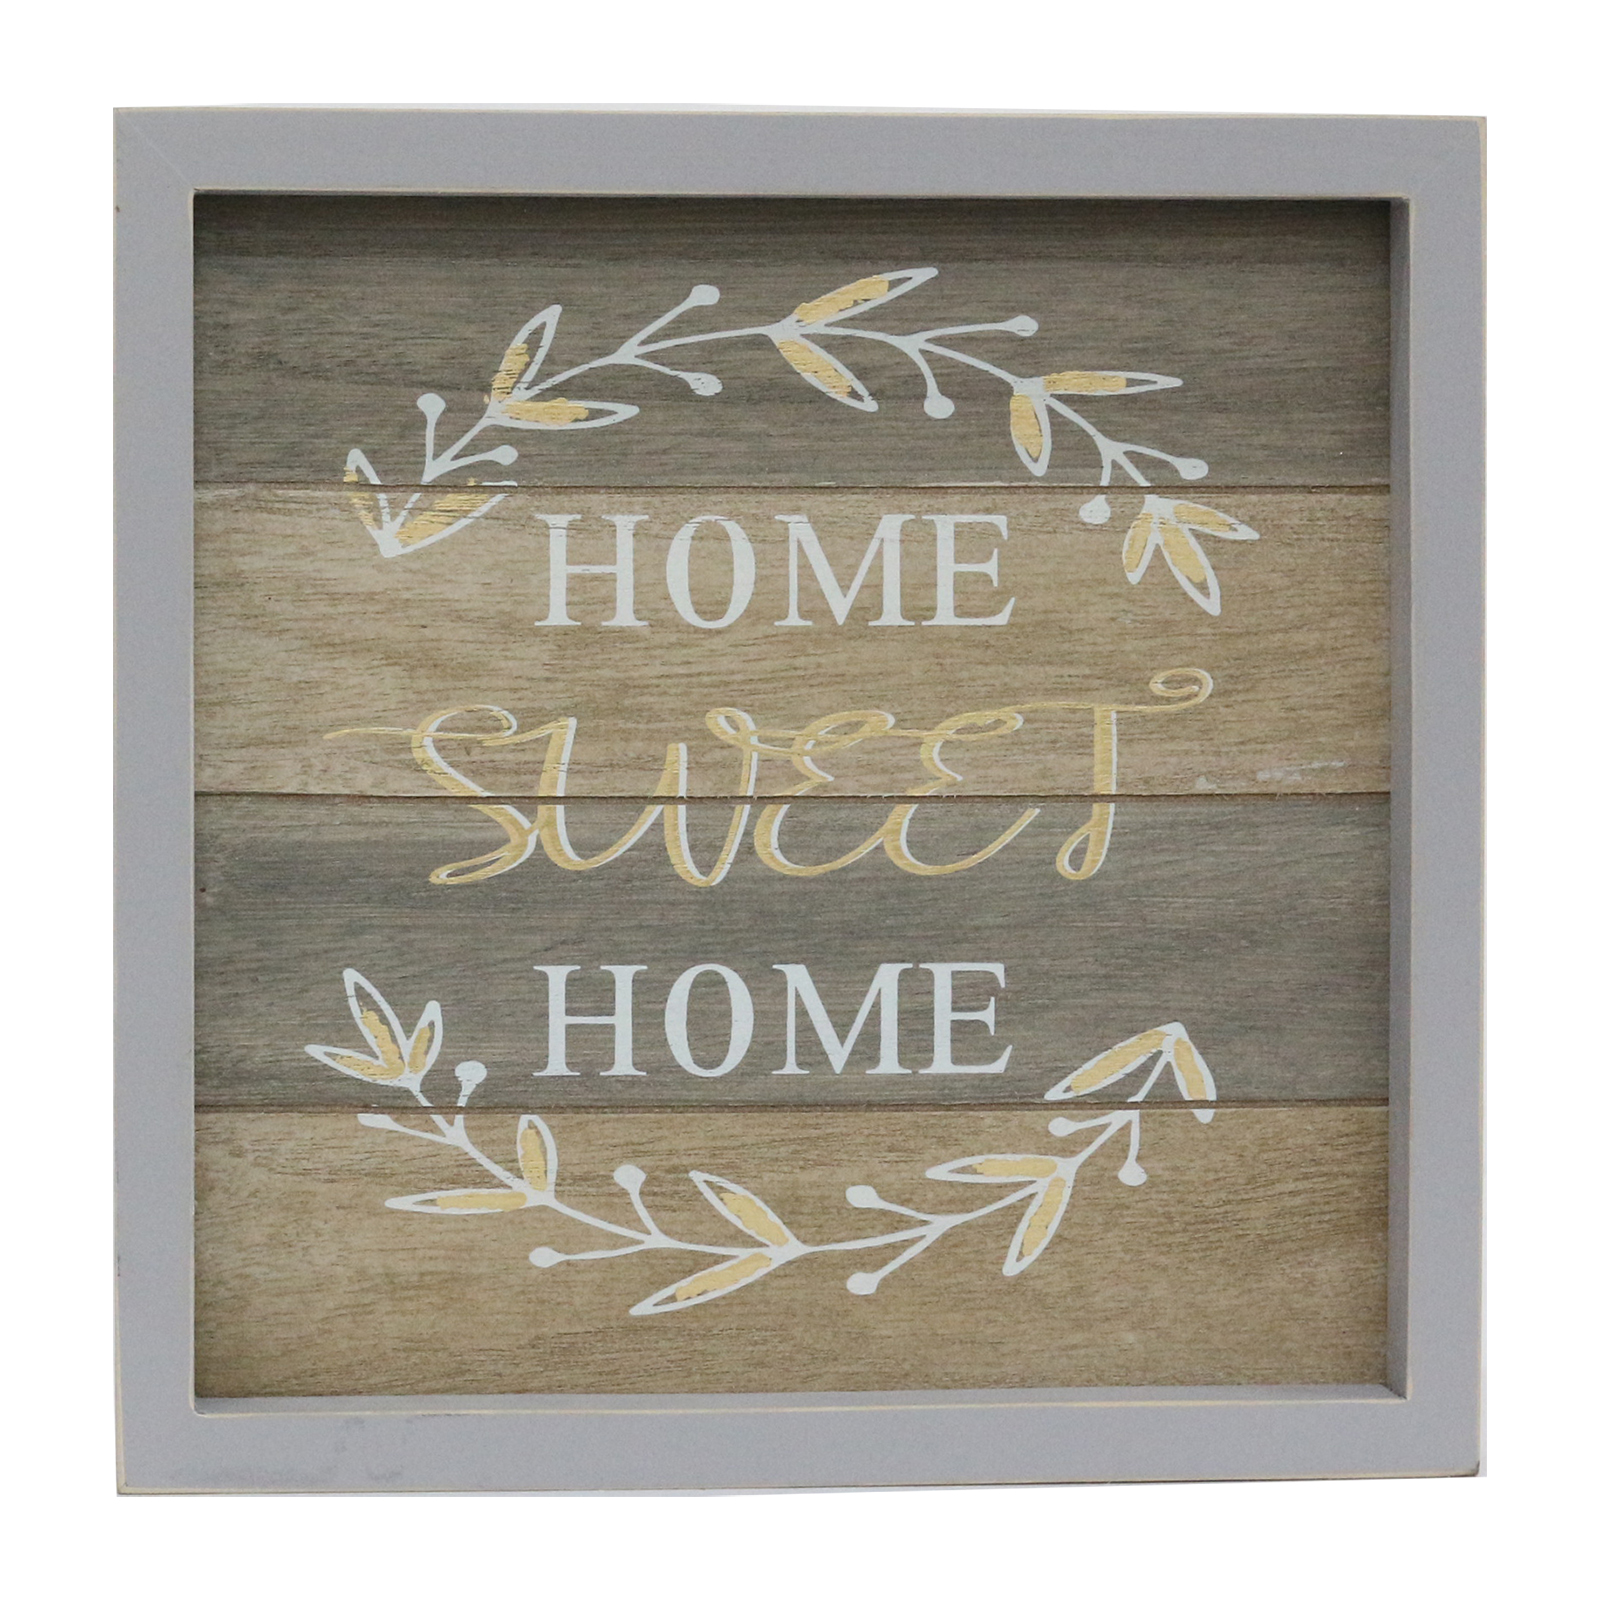 Find The Home Sweet Home Wall Décor Alexandria By